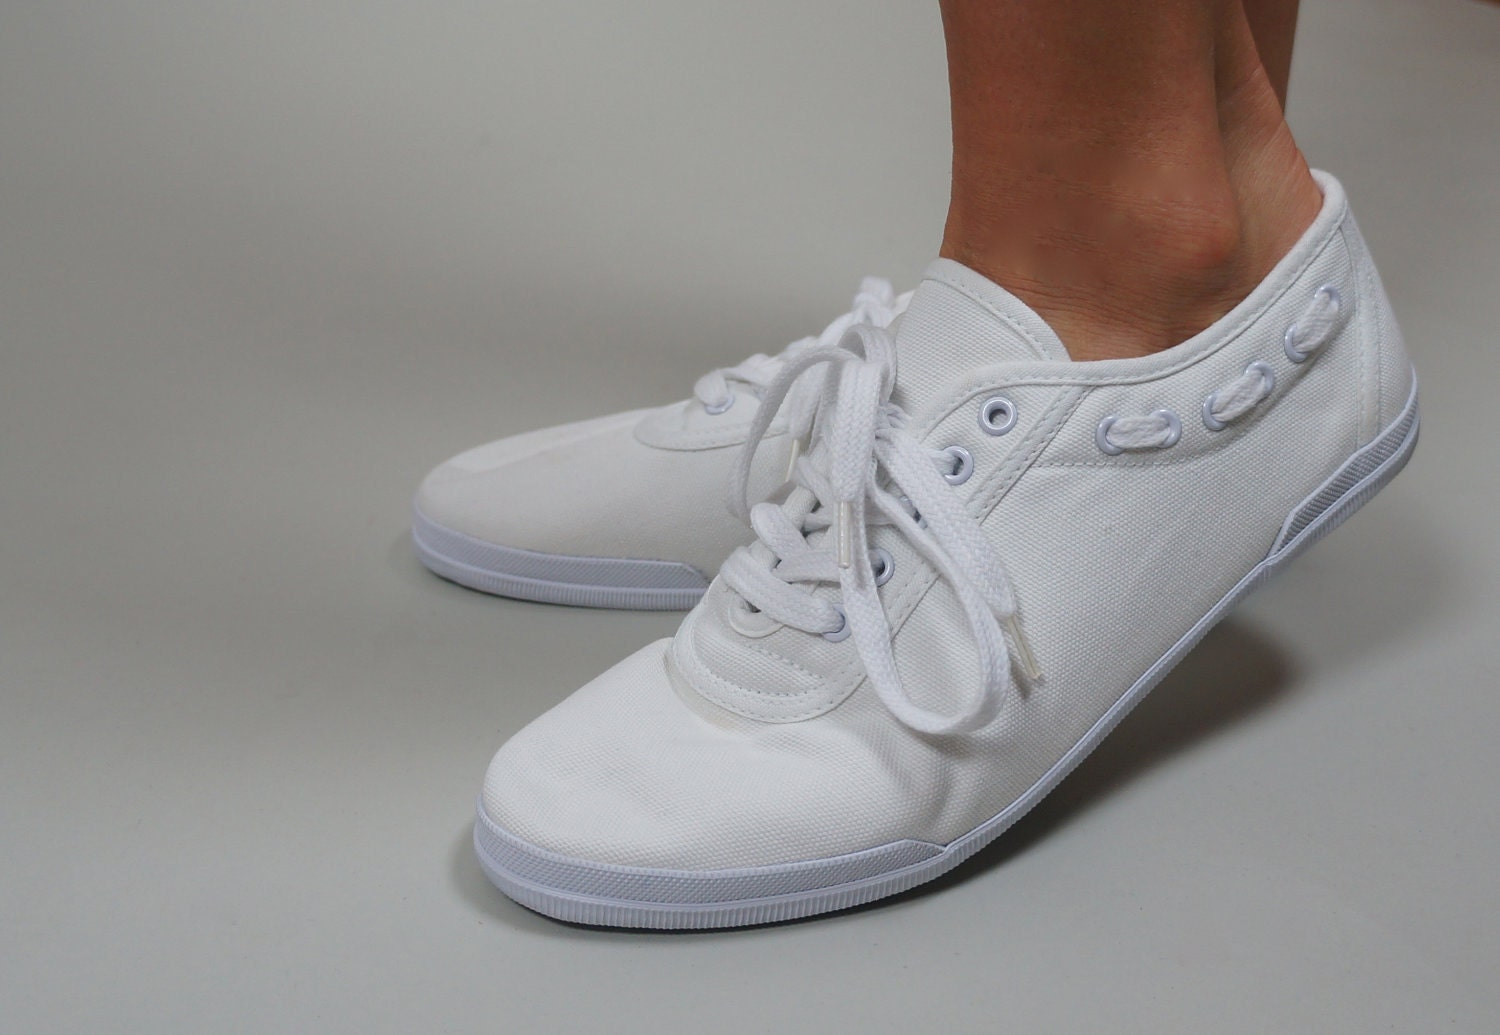 vintage white lace up canvas sneakers tennis shoes with side